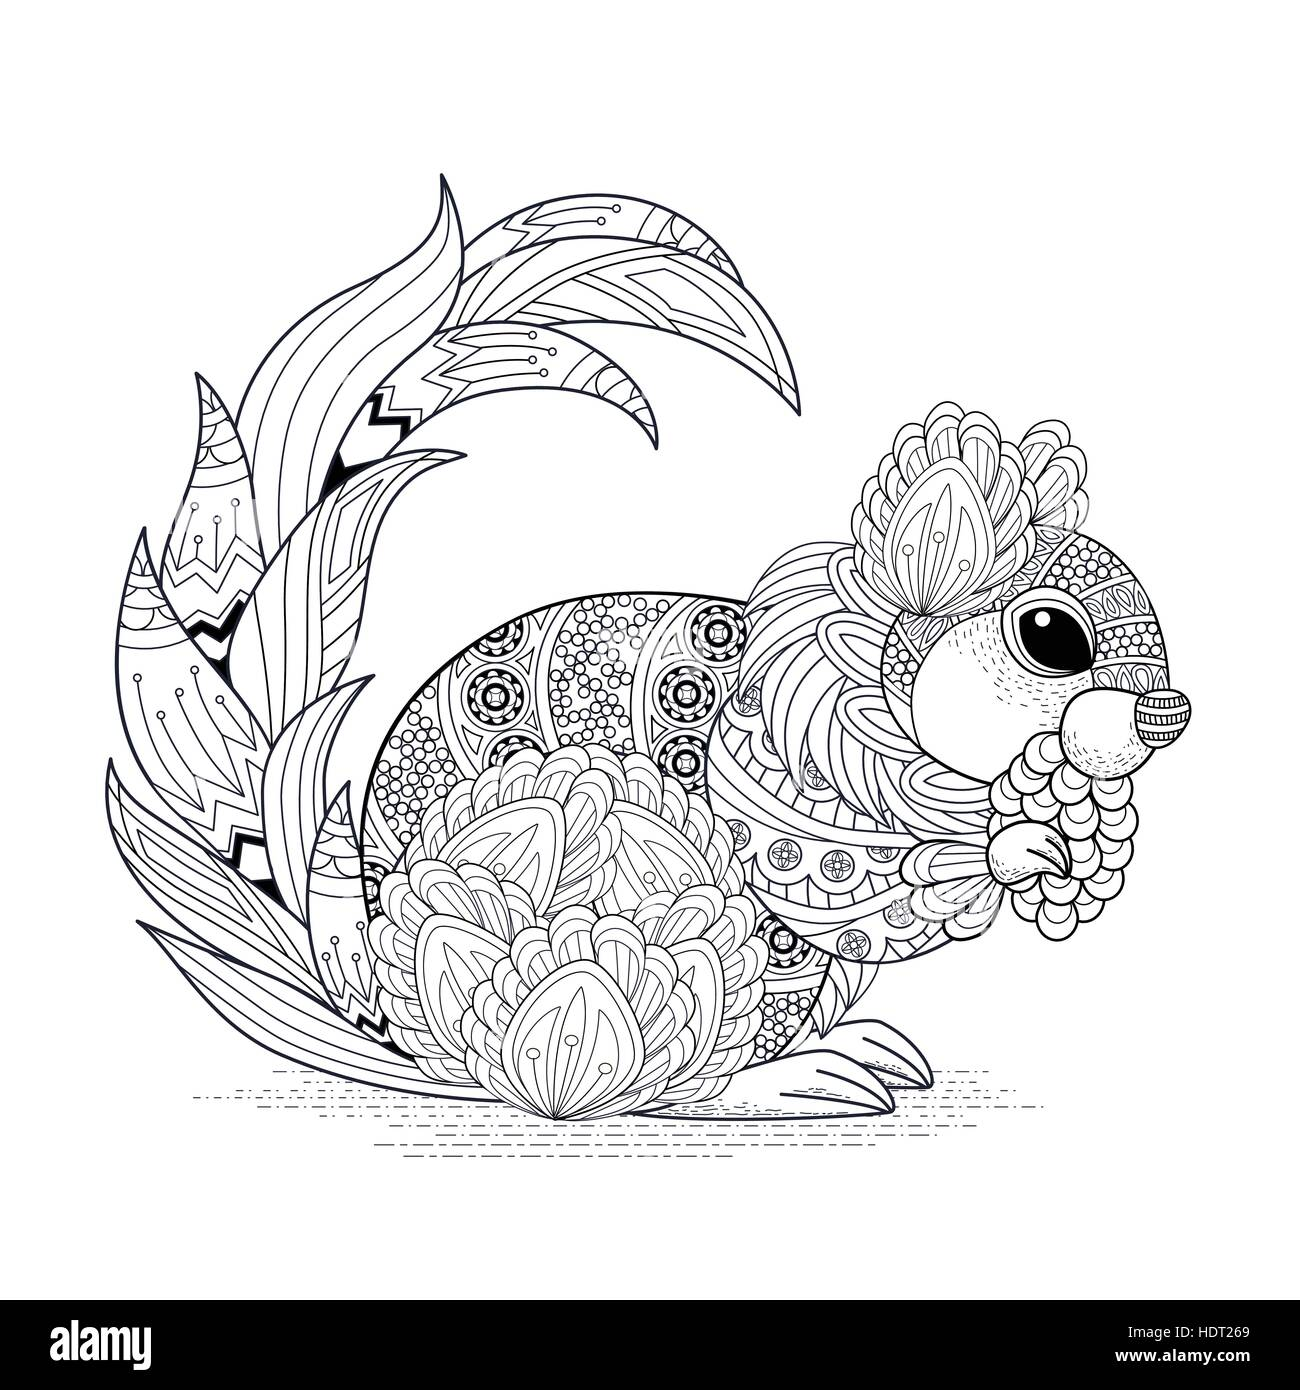 Lovely Squirrel Coloring Page In Stock Photos & Lovely Squirrel ...